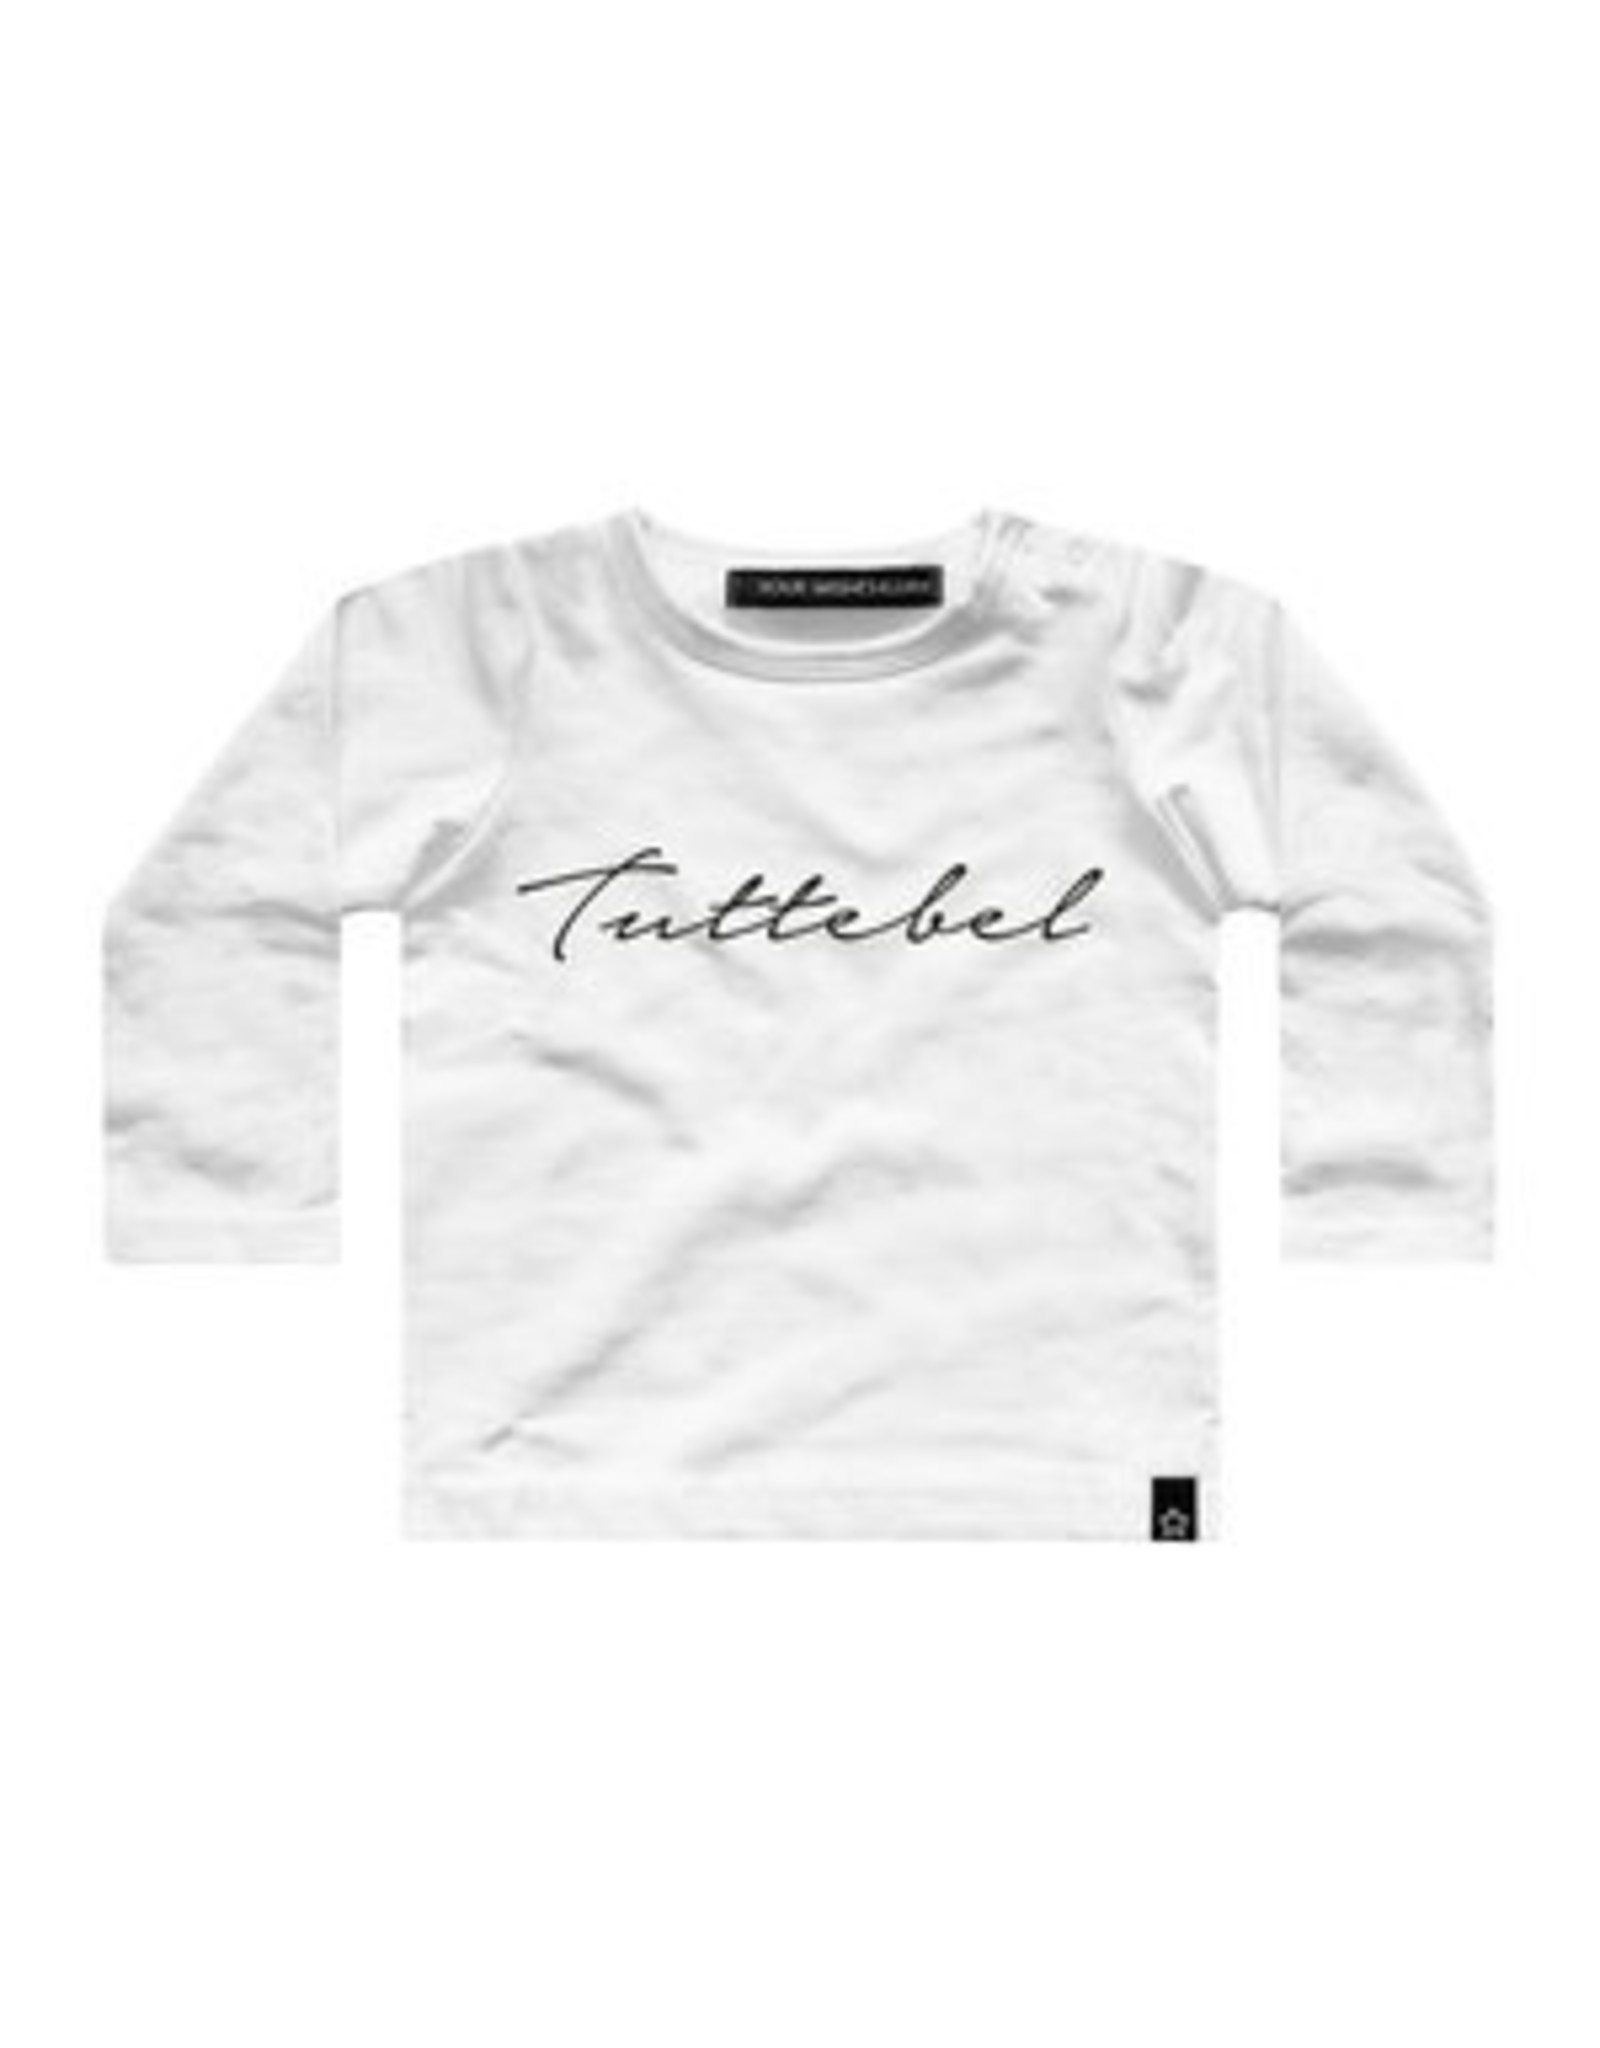 Your Wishes Tuttebel shirt